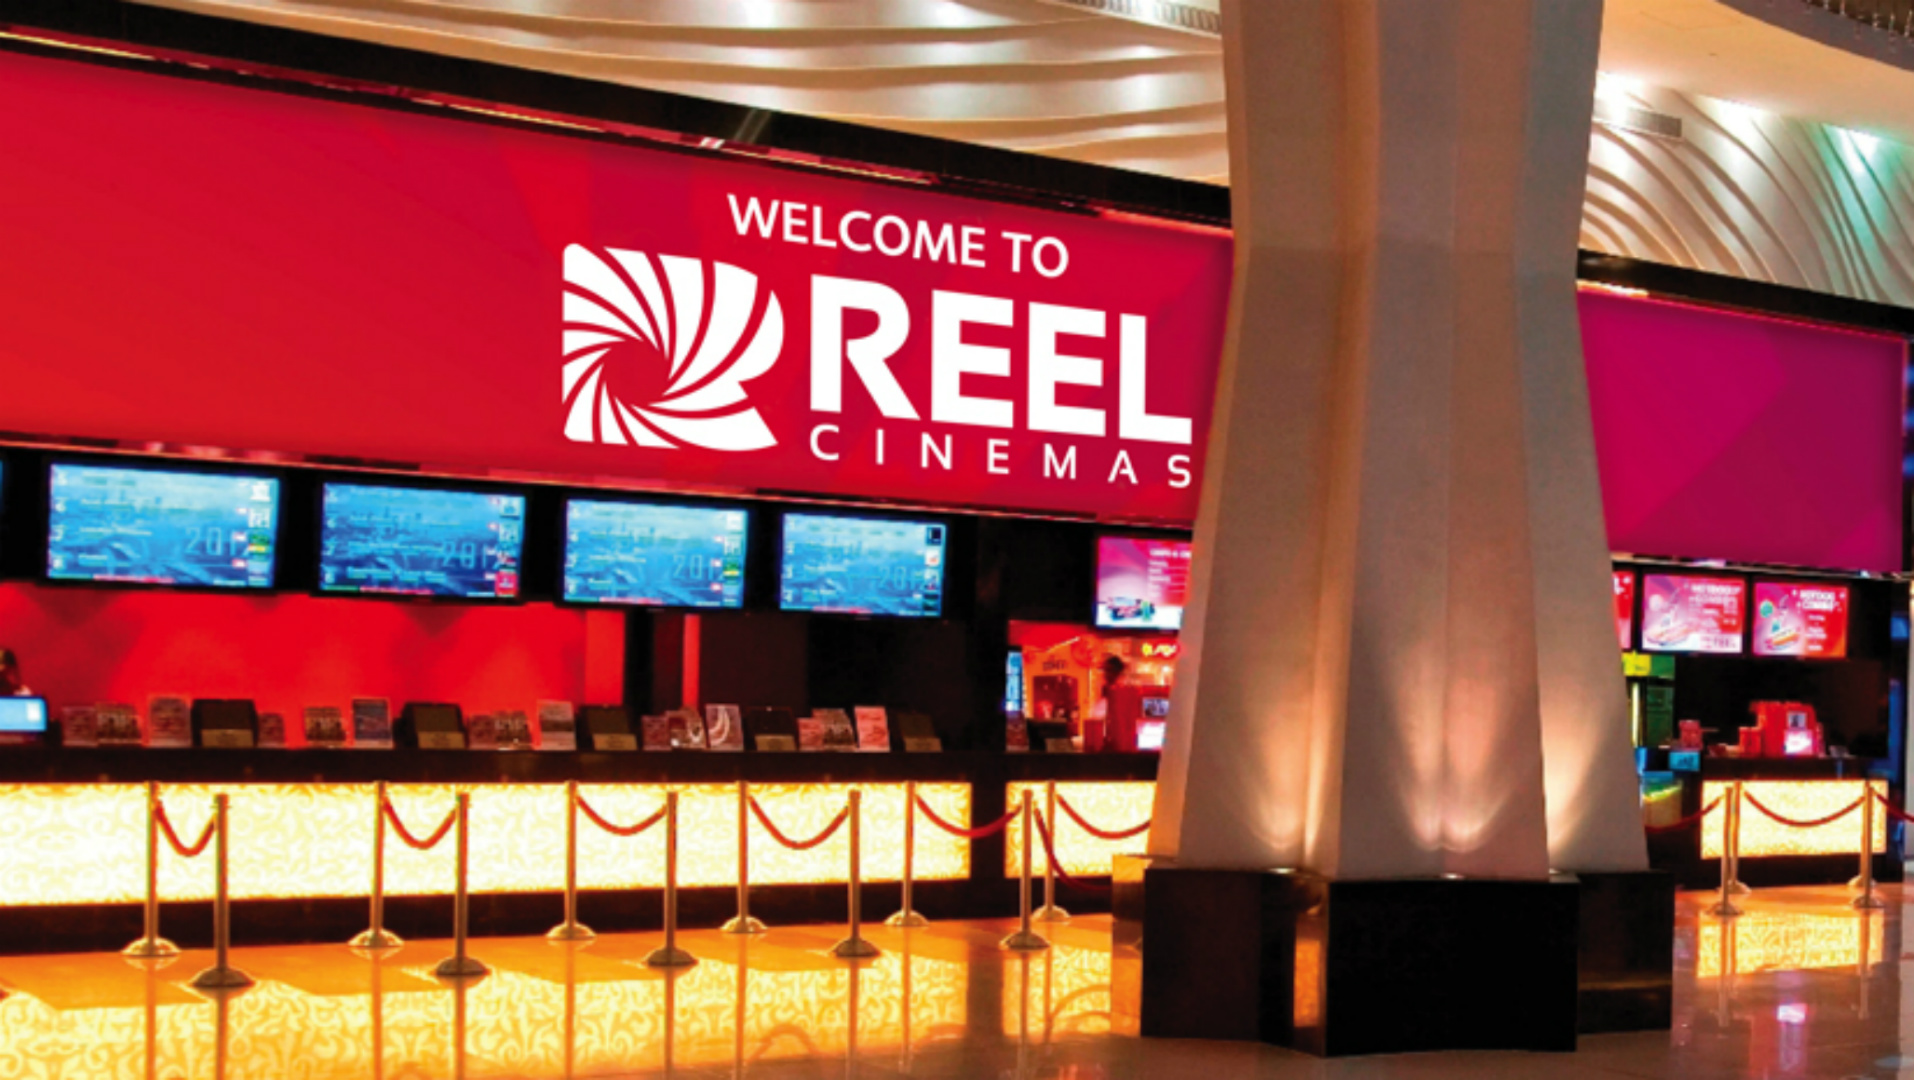 6cd4225b7 Description. AED 50 to Spend on Food and Beverages with Optional Cinema  Ticket at Reel Cinemas